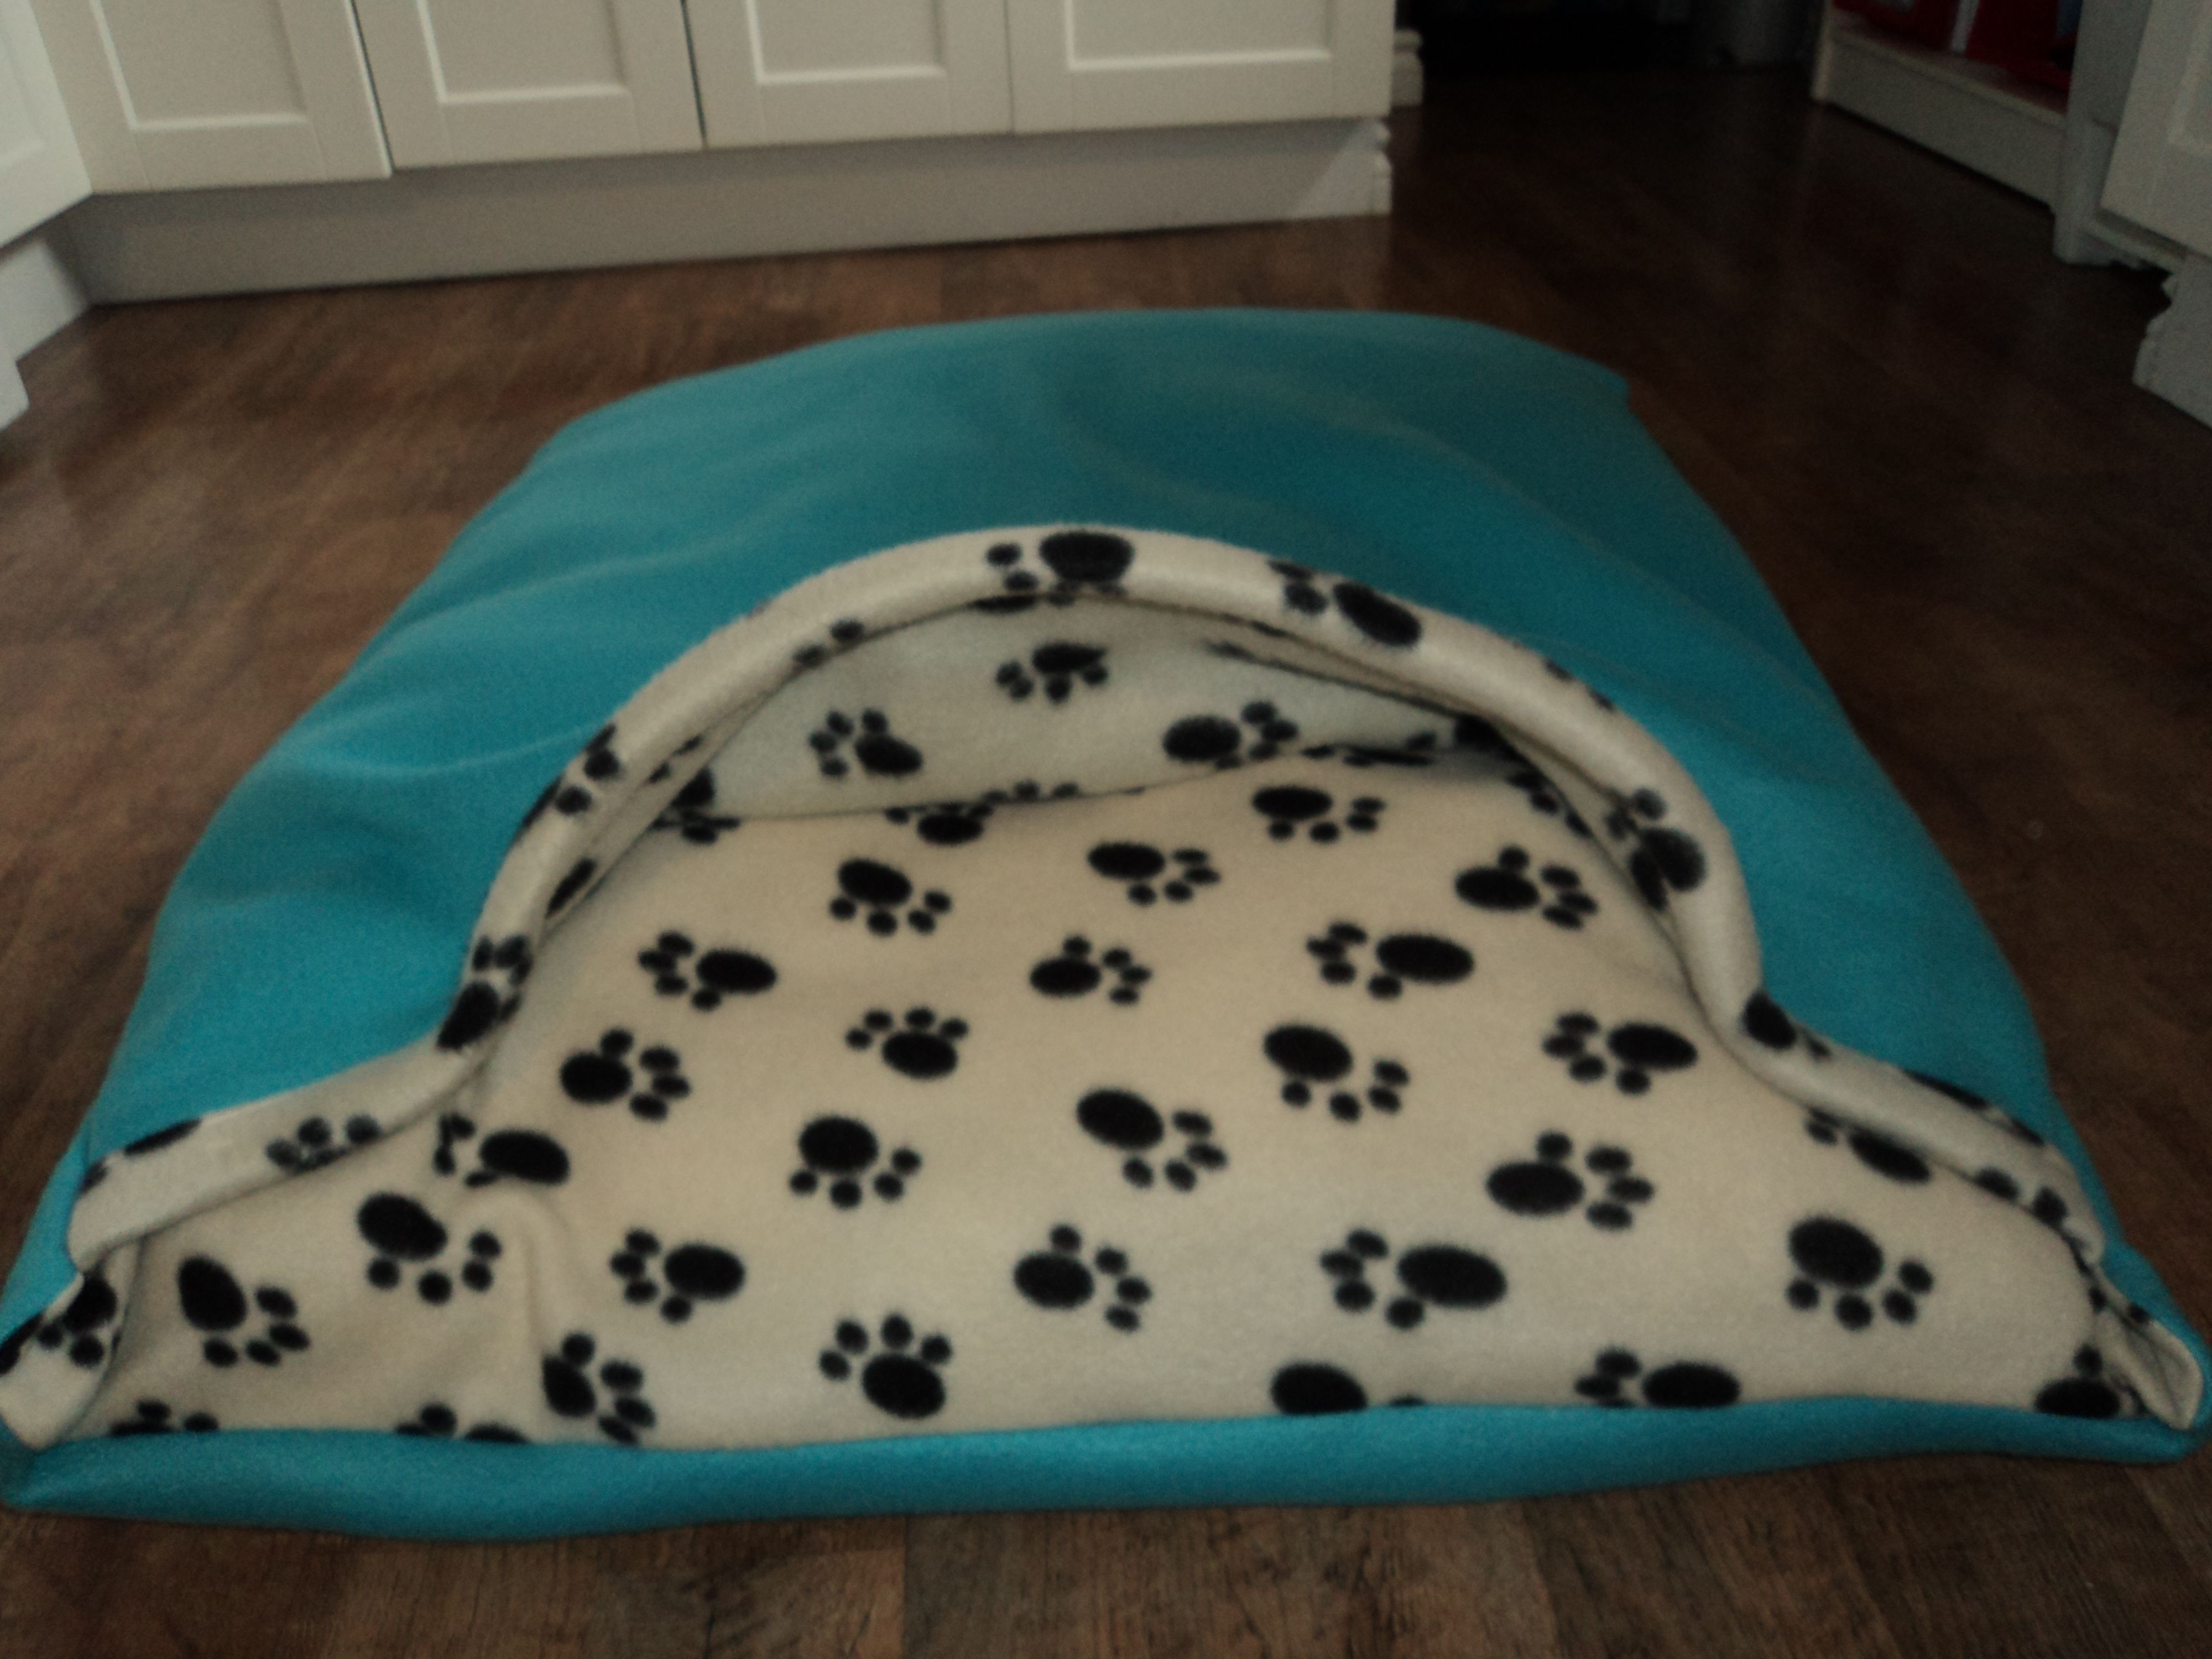 Diy Hundebett Diy Dog Bed Homemade Our Little Dogs Love It Psy